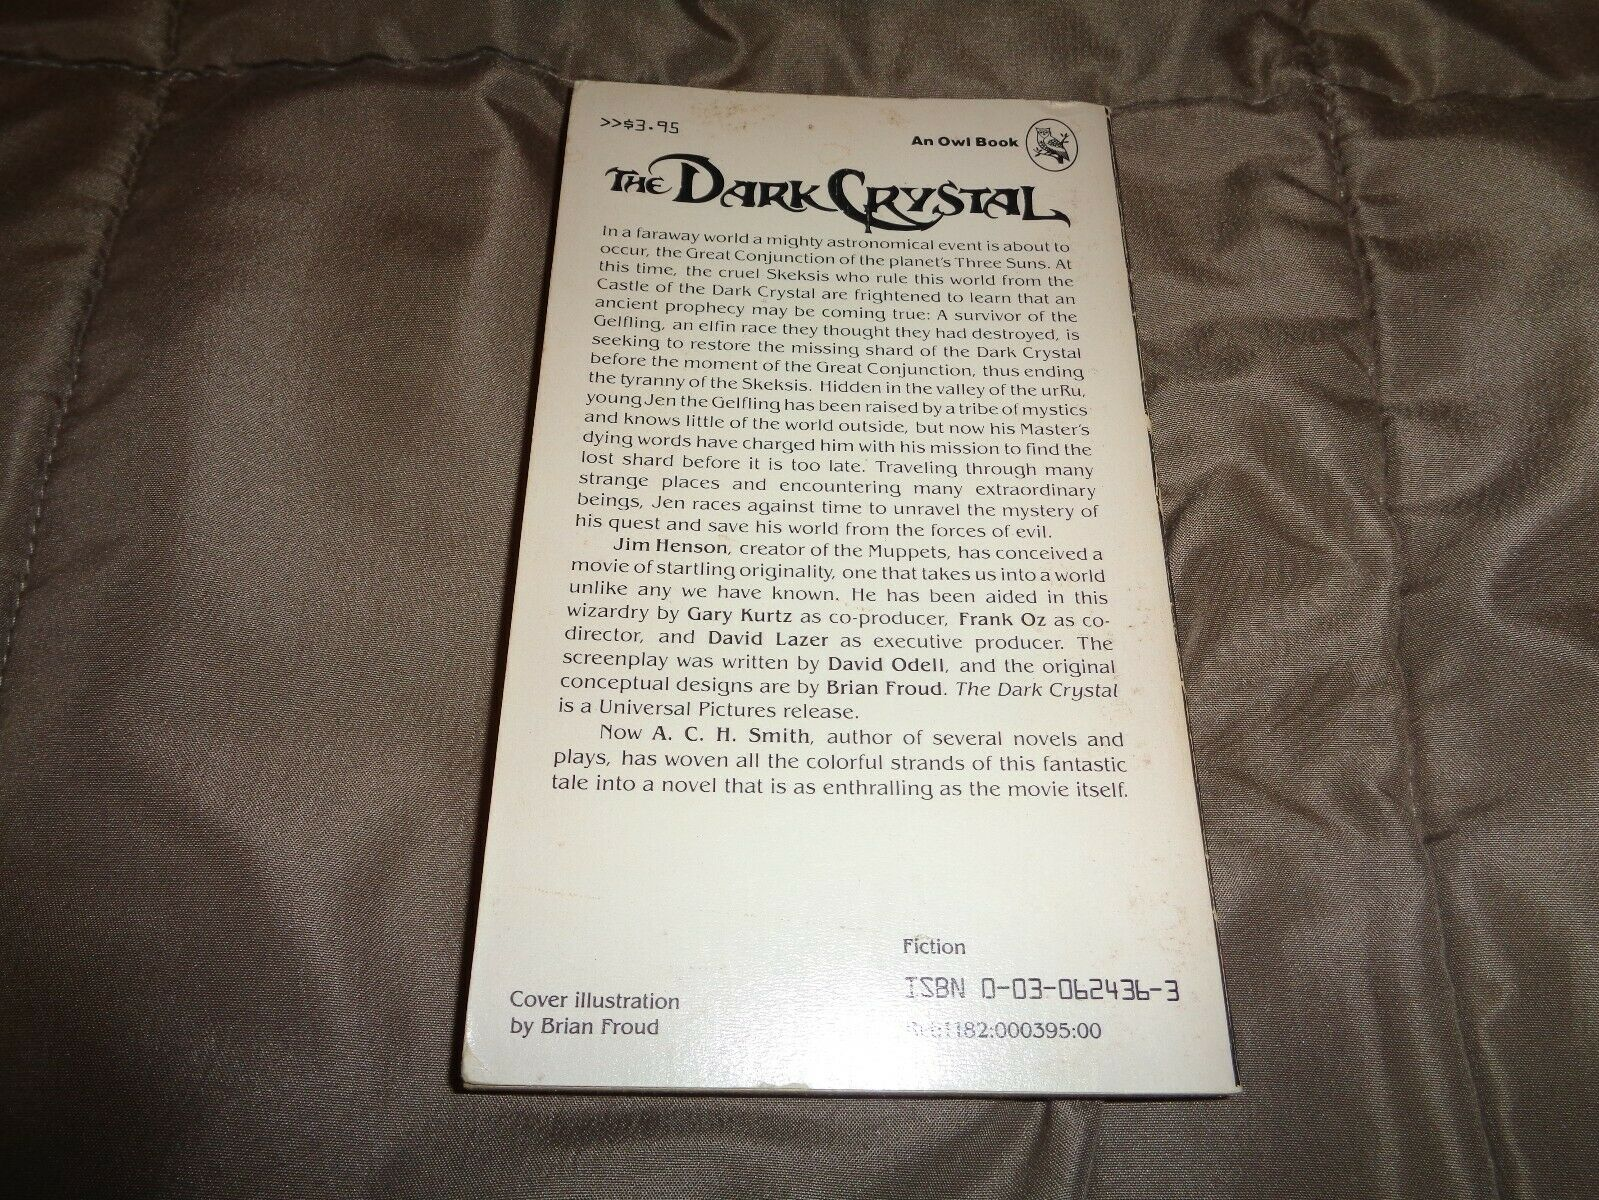 THE DARK CRYSTAL PAPERBACK BY A.C.H. SMITH,FIRST EDITION |